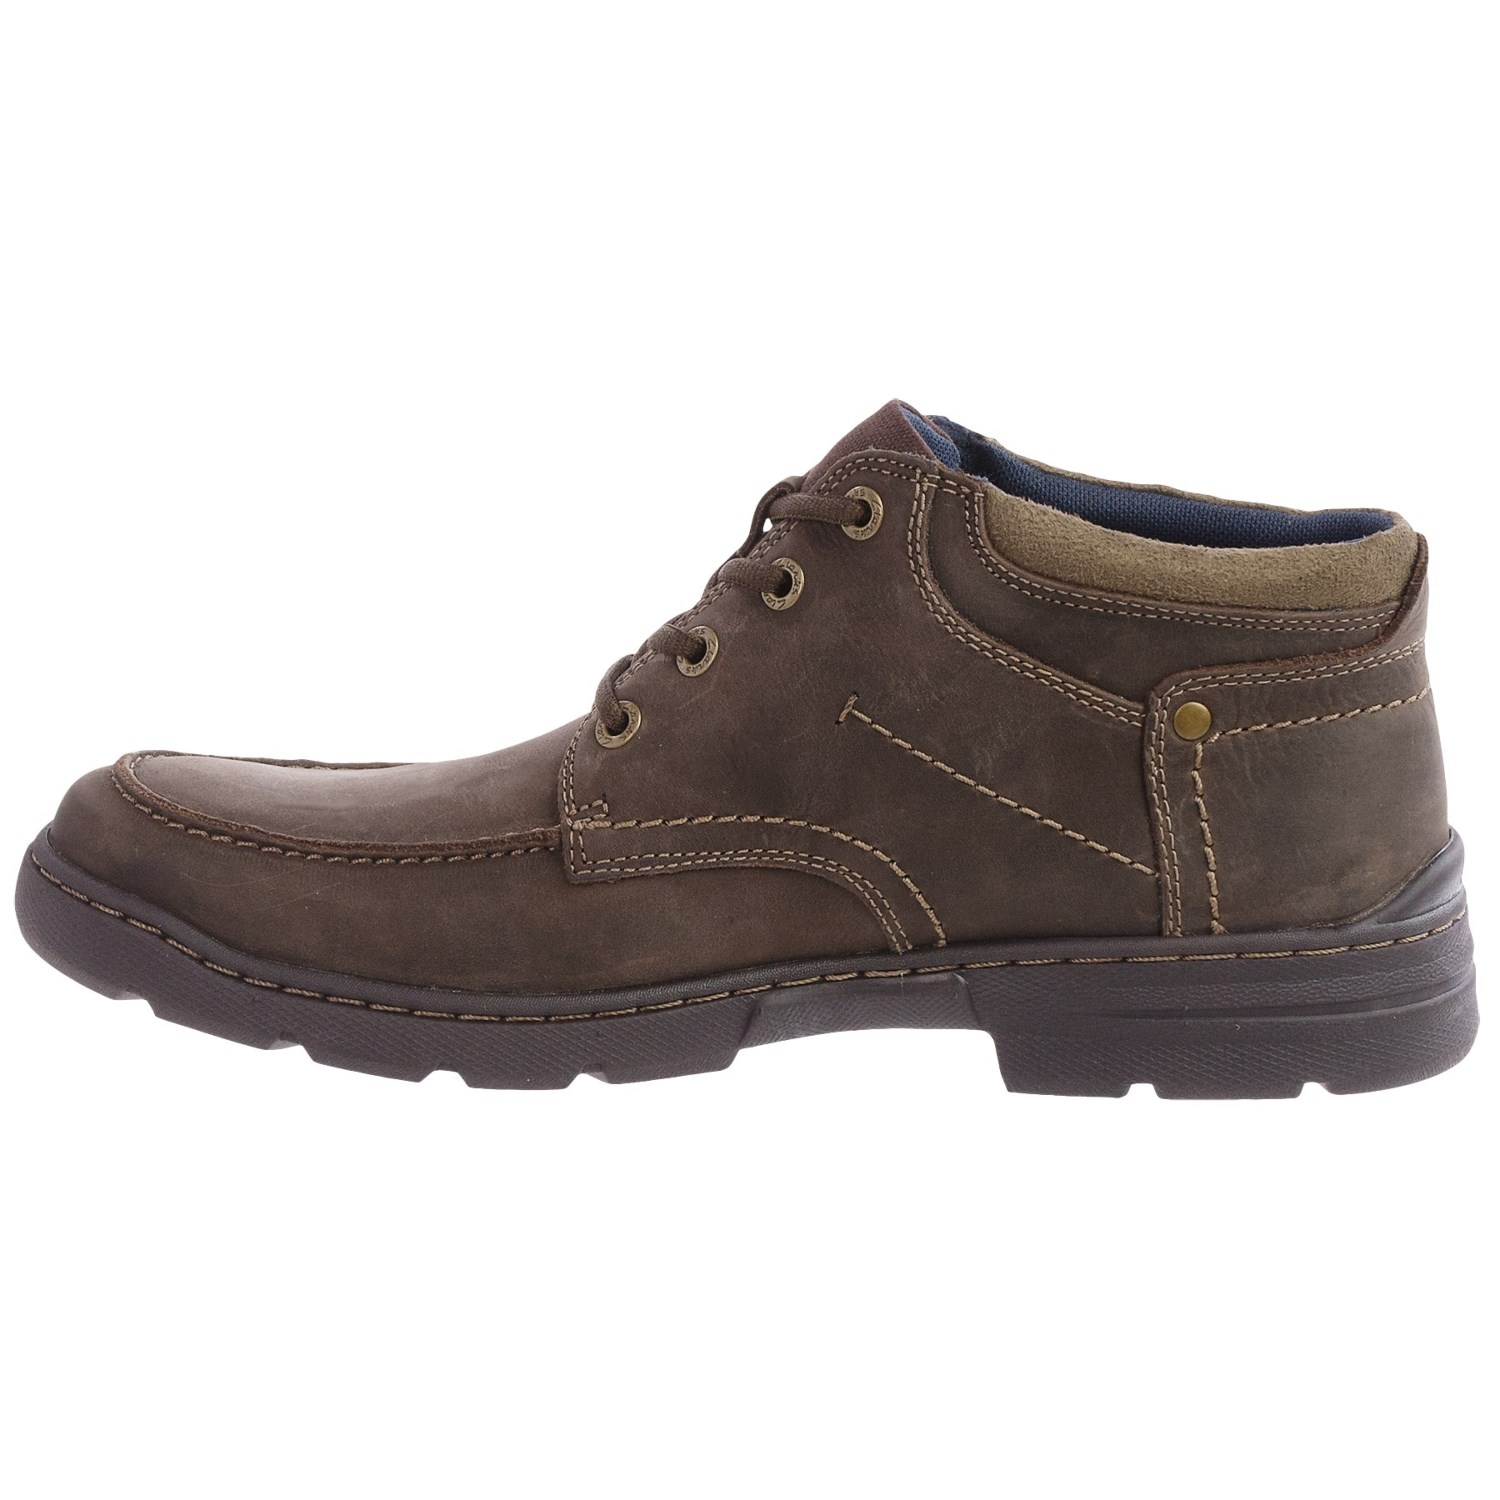 Clarks Mens Sneakers Sale: Save Up to 40% Off! Shop coolvloadx4.ga's huge selection of Clarks Sneakers for Men - Over 25 styles available. FREE Shipping & Exchanges, and a % price guarantee!